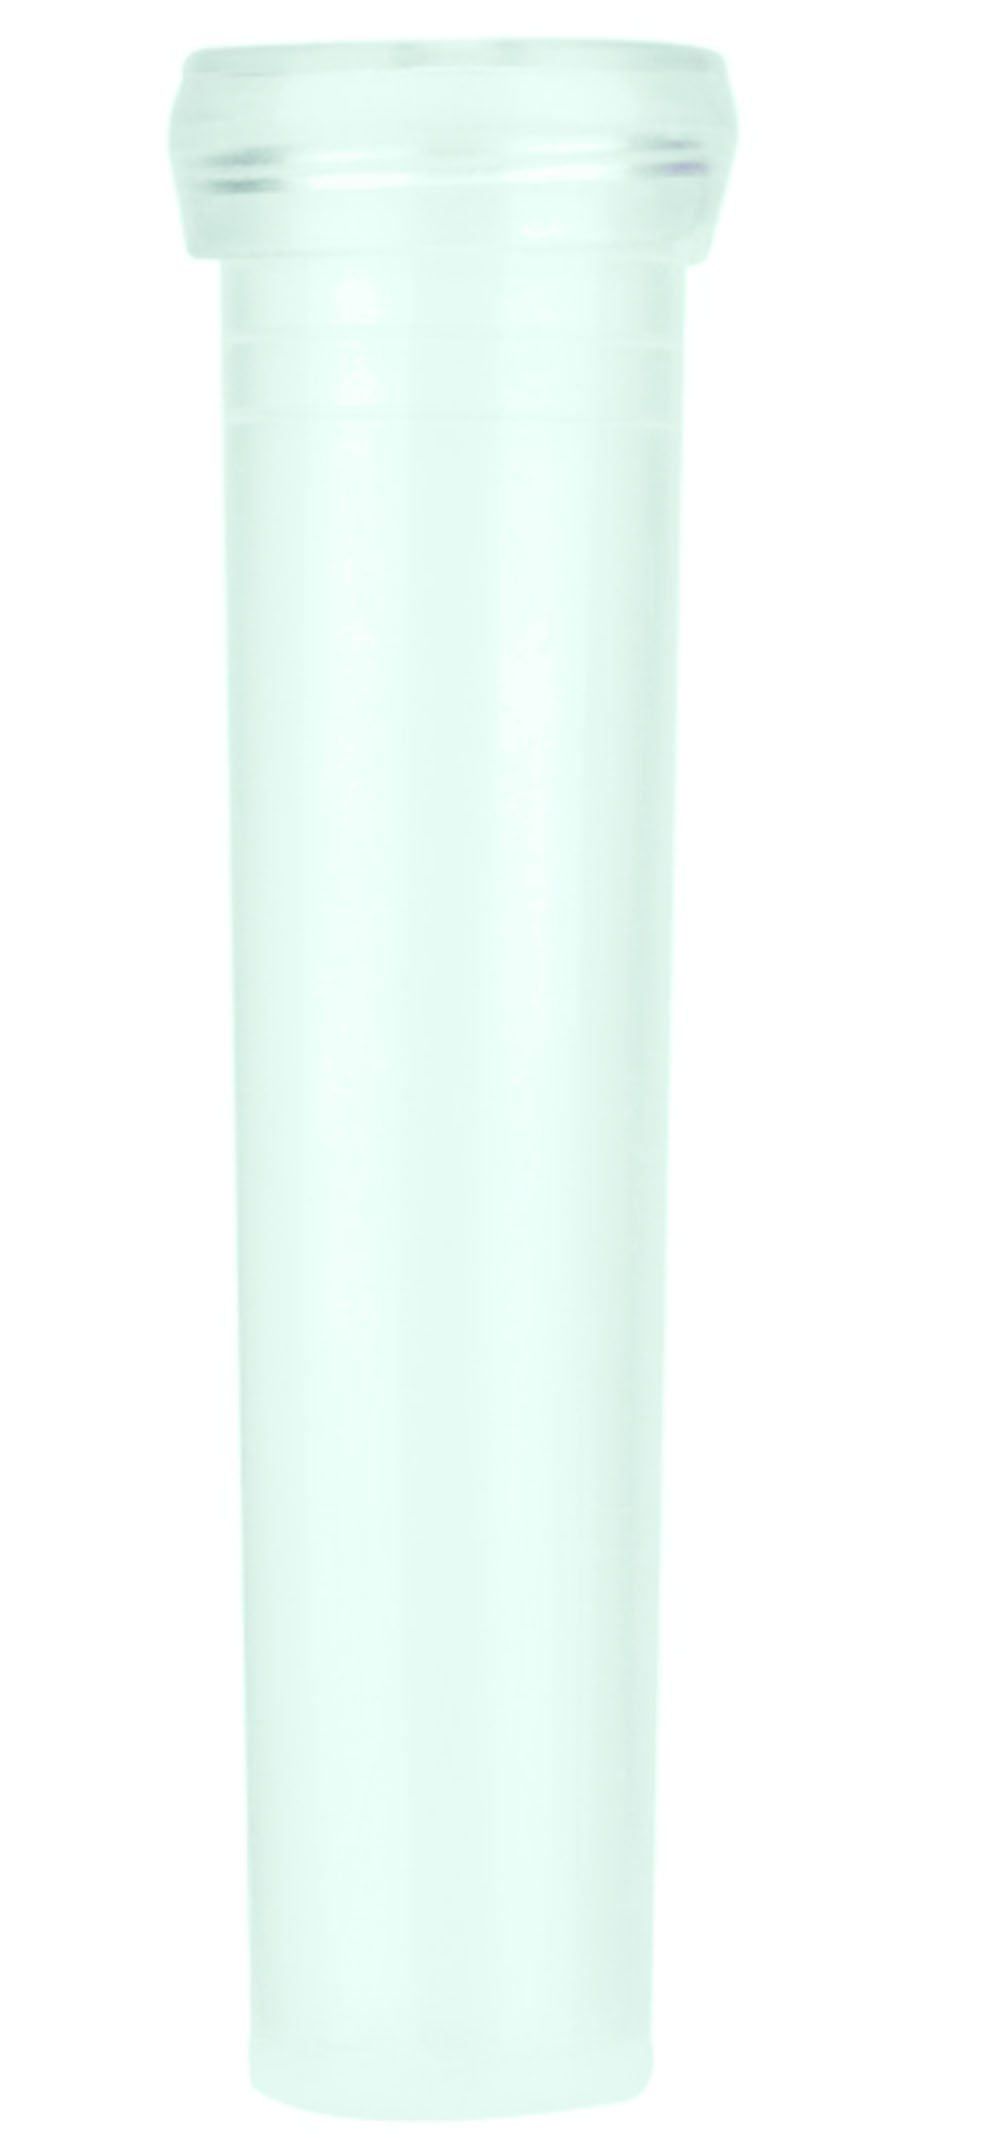 Ancefine Flower Water Tubes Plastic Floral Nutrient Tubes for Flower Arrangements, 2-7/ 8 Inches, Pack of 50